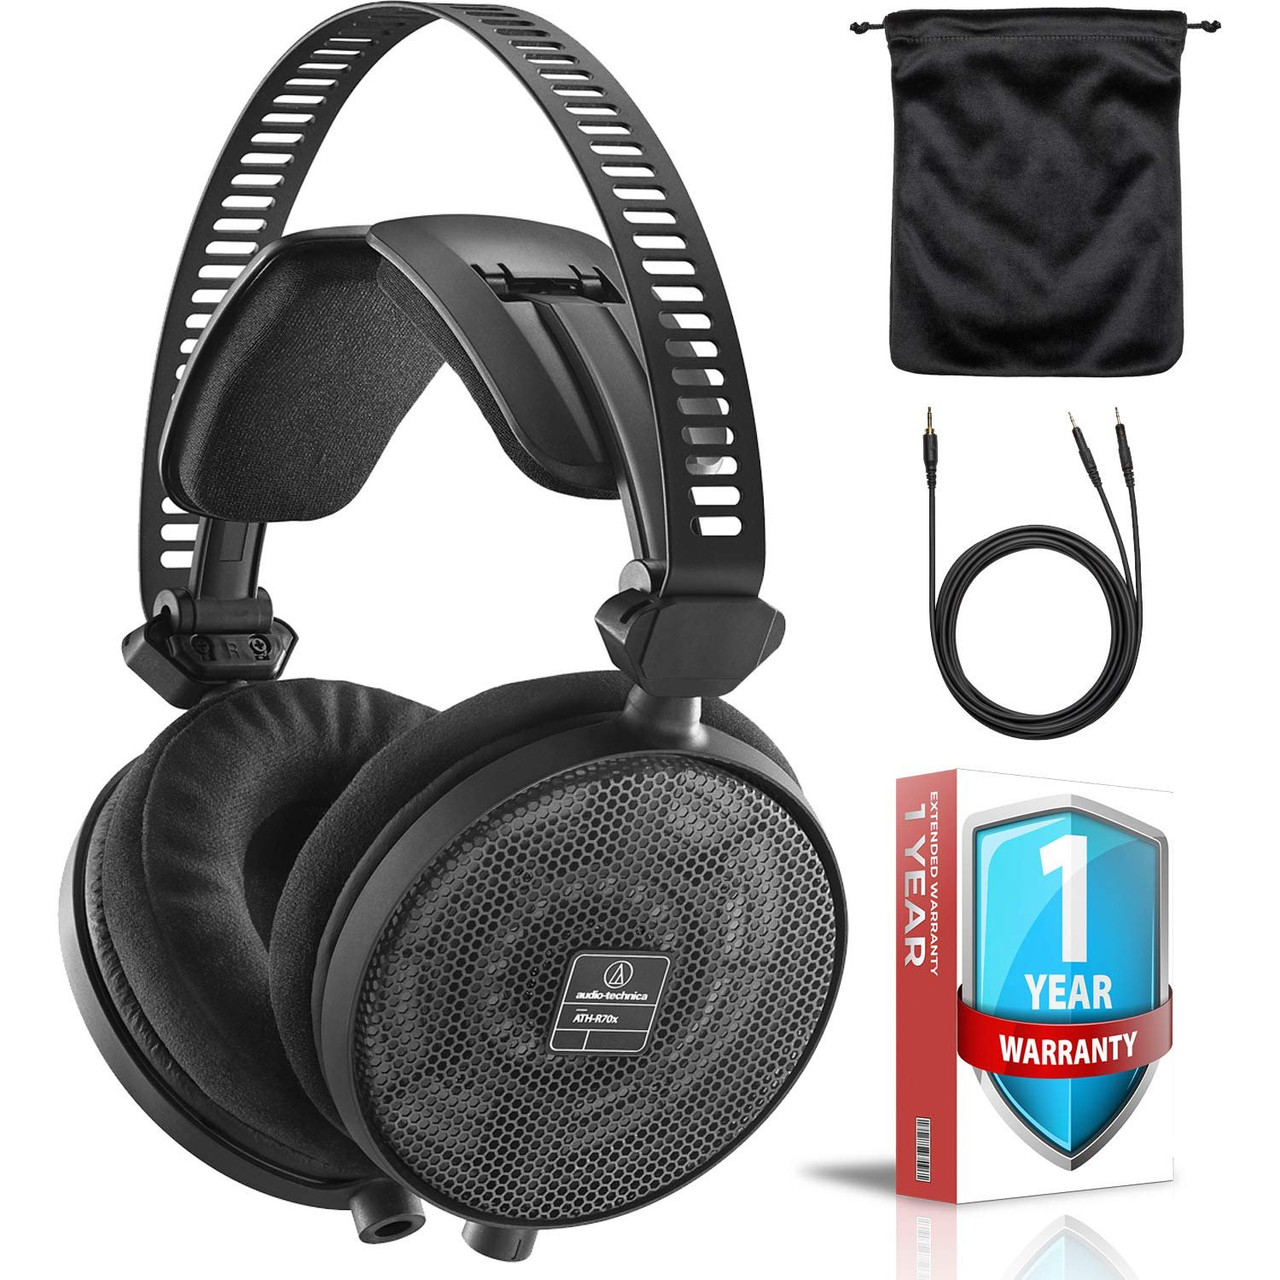 1664f8ff393 ATH-R70x Professional Open-Back Reference Headphones + Protective Carrying  Case with Extended Warranty - hhgregg